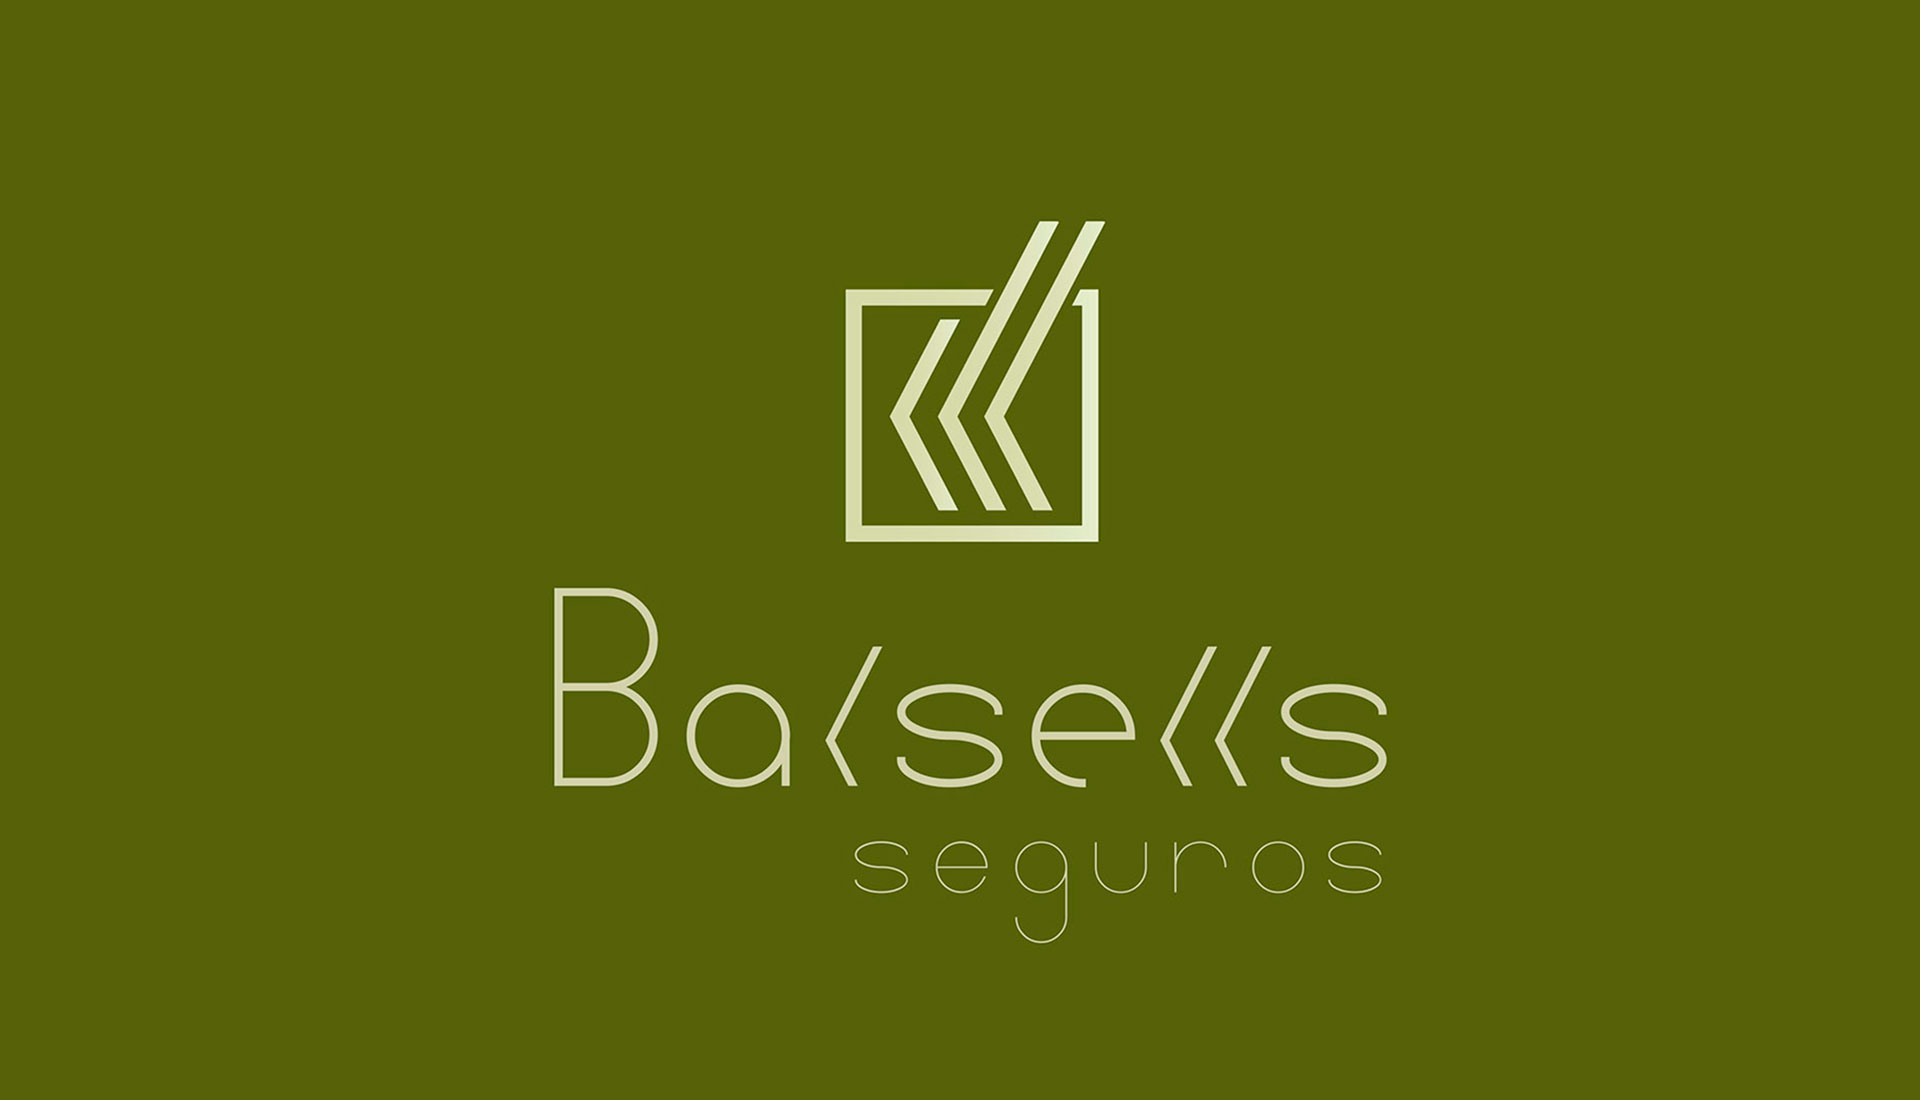 agencia-marketing-digital-valencia-identidad-corporativa-branding-seguros-balsells-09